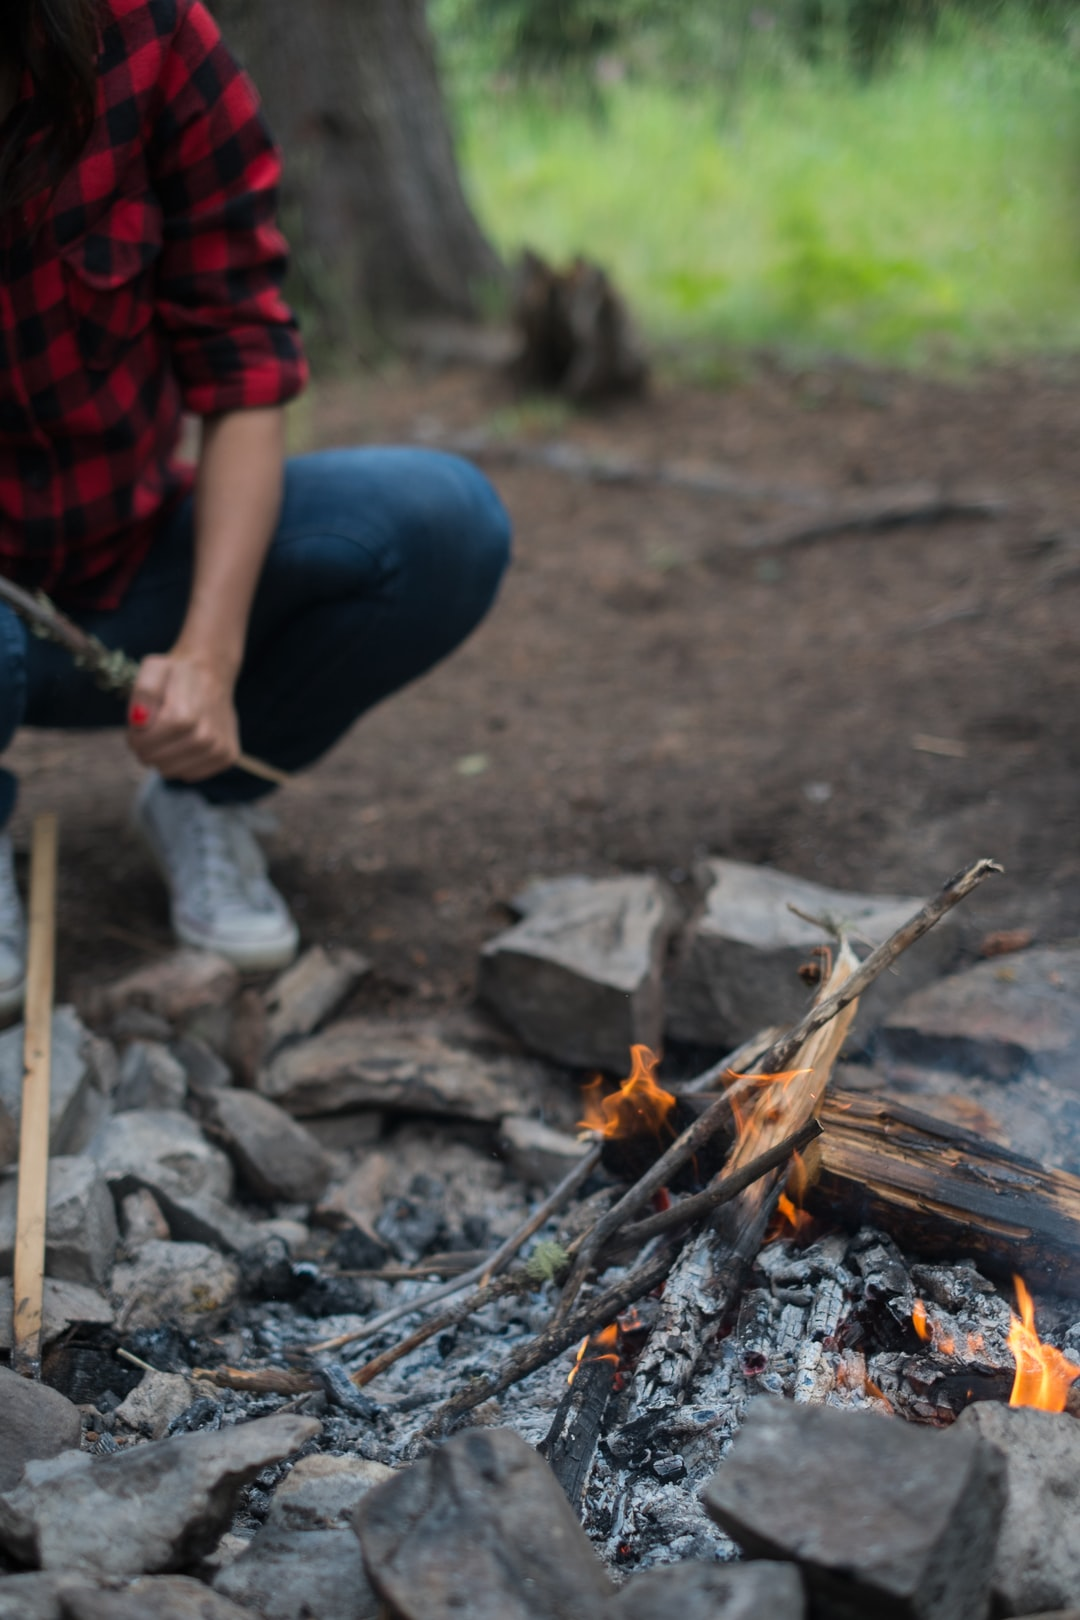 Fire during camping